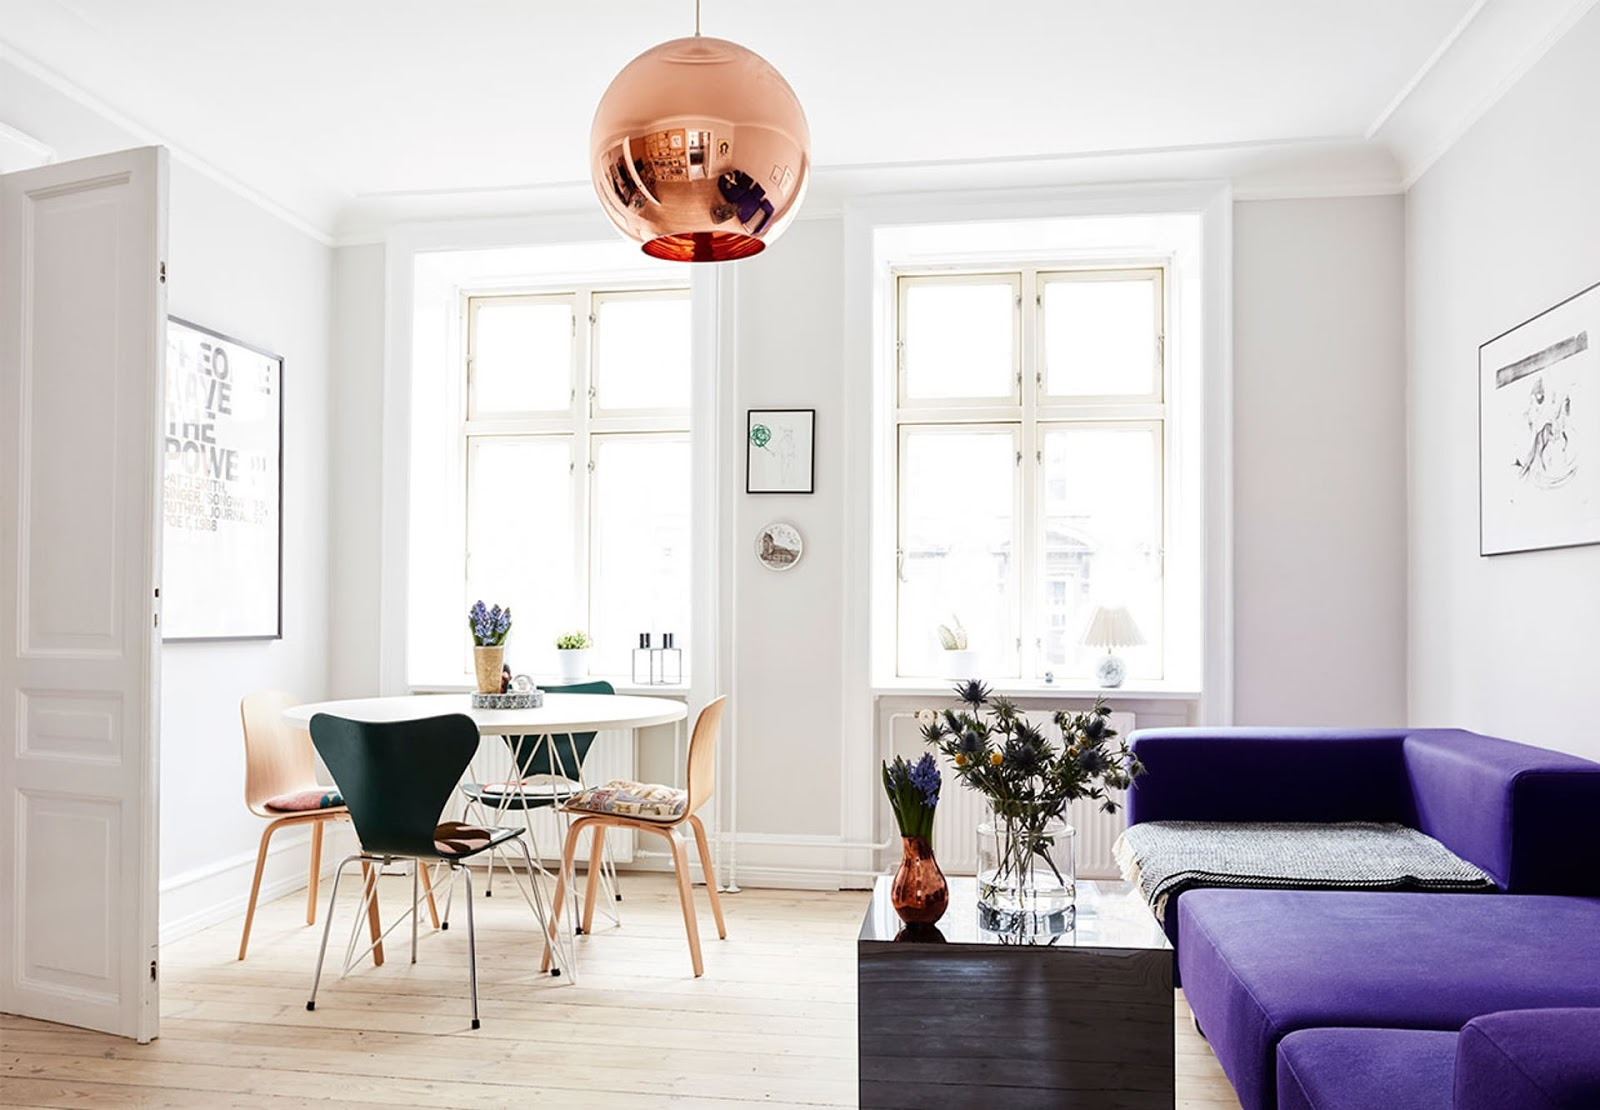 nordic design, copper lamp, arne jacobsen chair, mid century modern furniture, bright interior